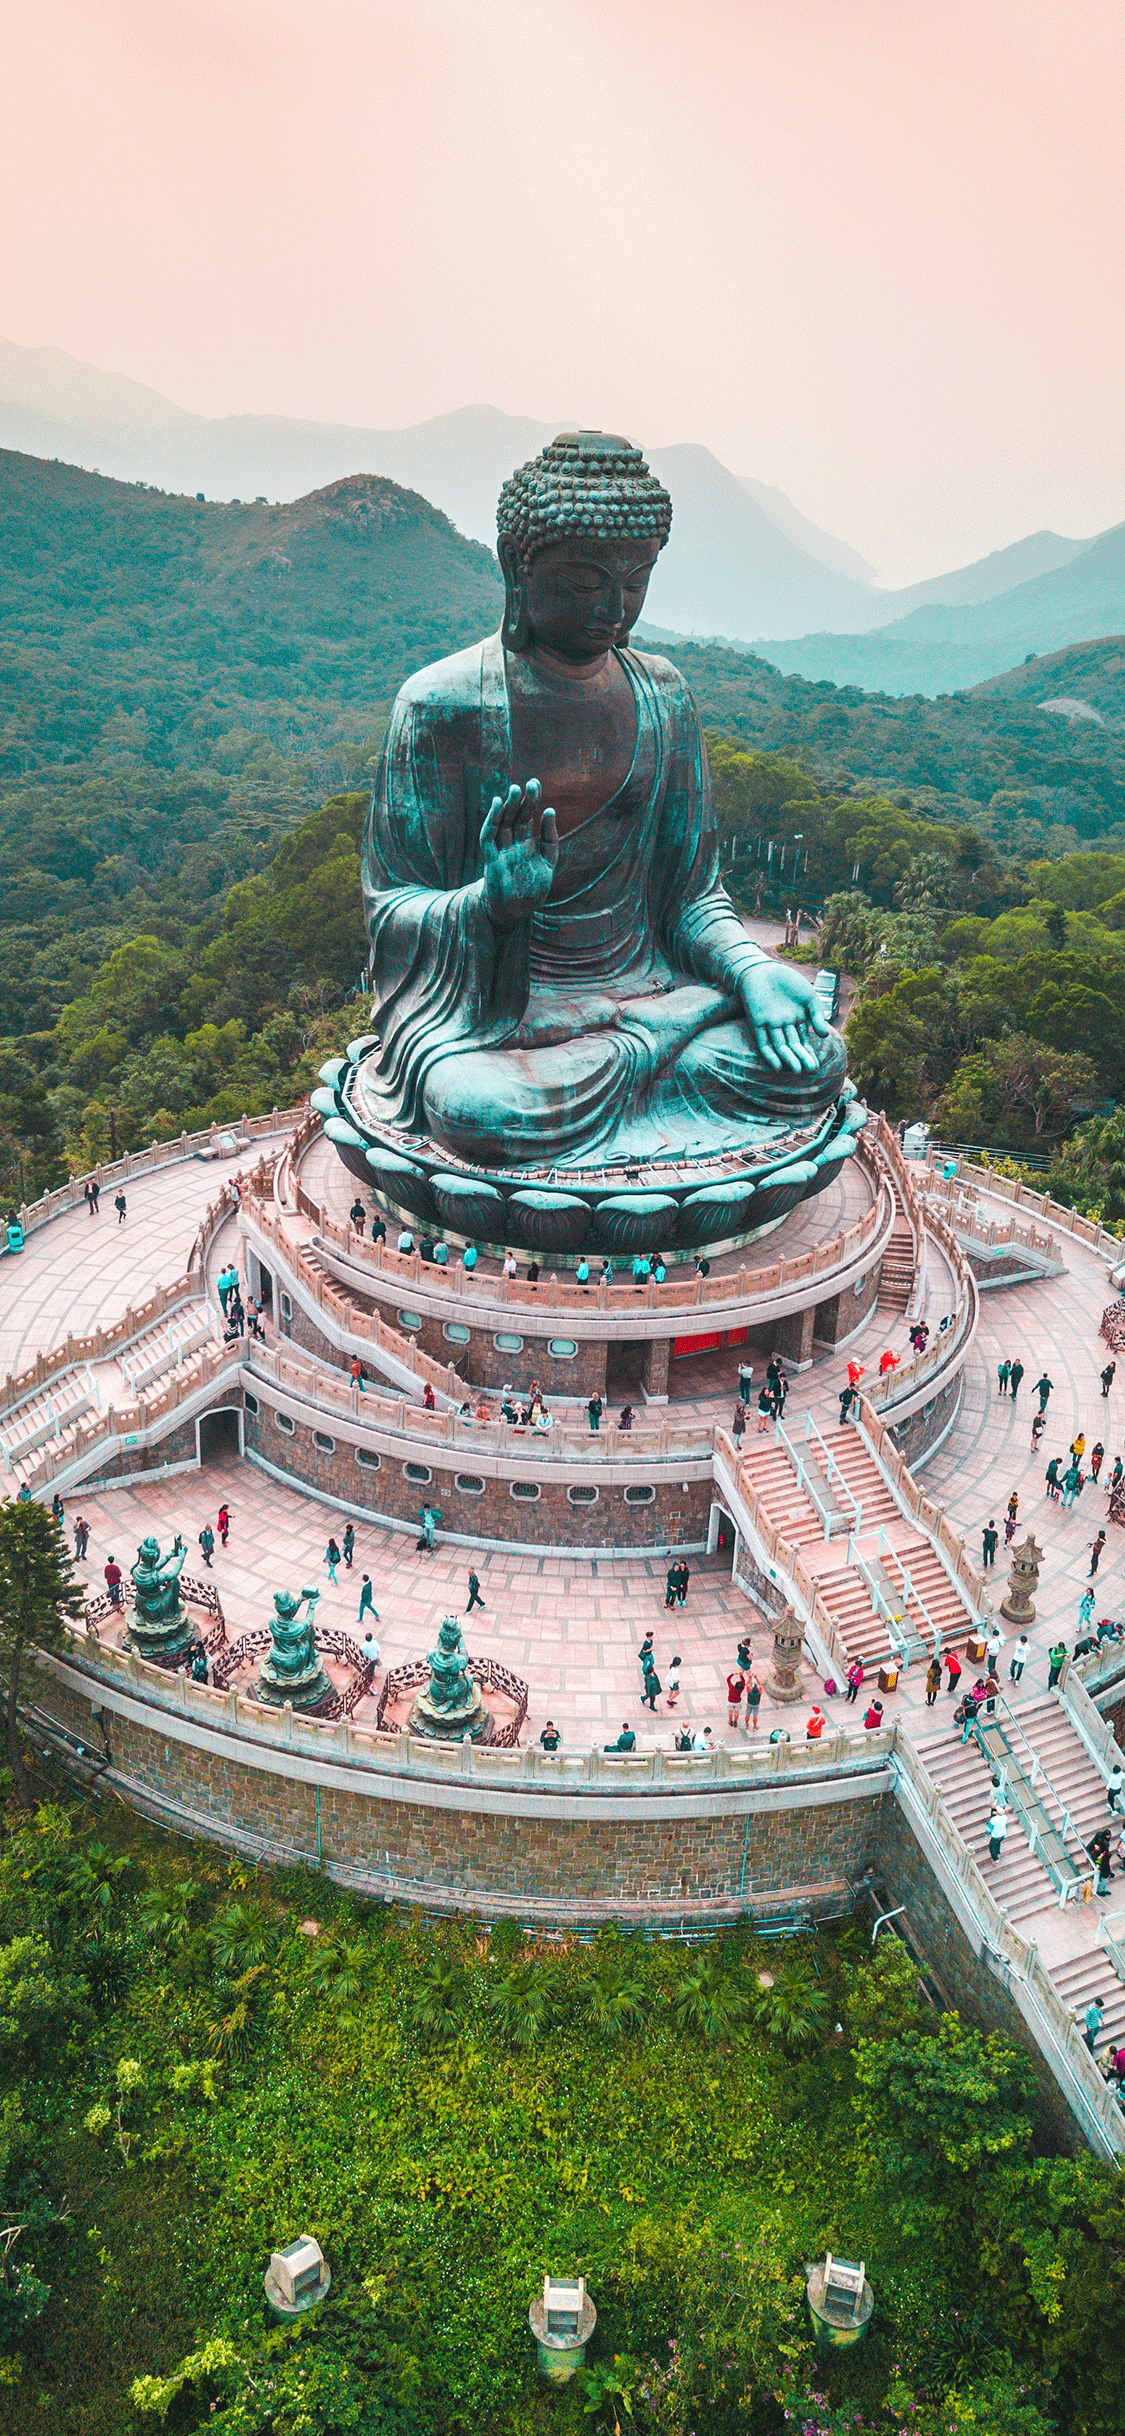 iPhone wallpaper budha hong kong Fonds d'écran iPhone du 09/08/2018